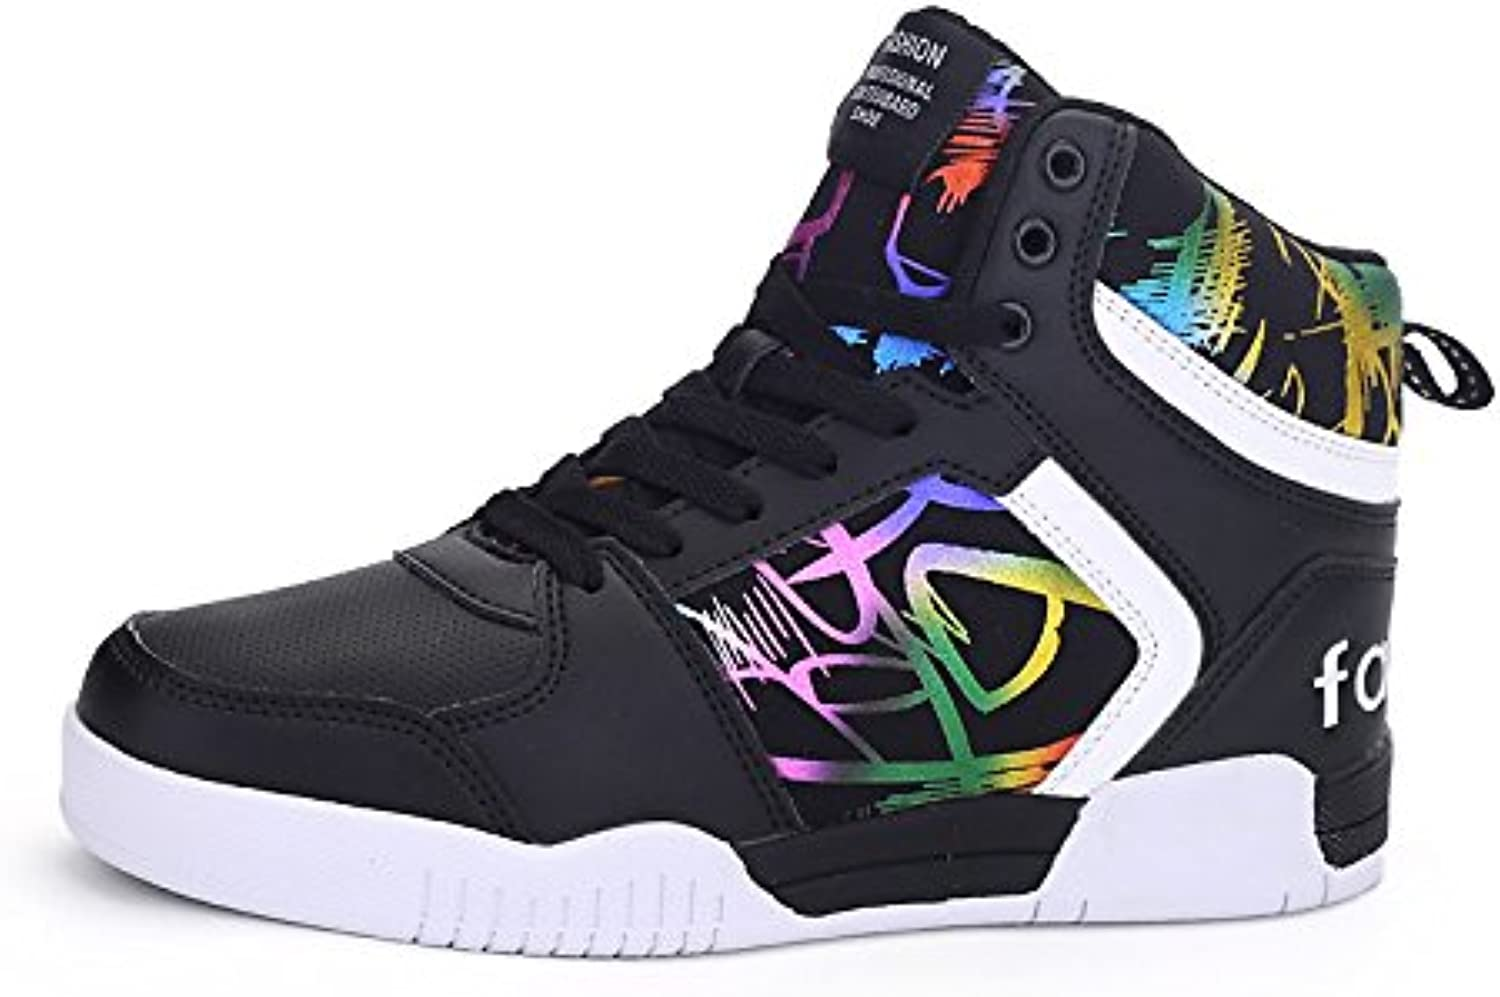 DIMAOLV Men's shoes Synthetic Microfiber PU Tulle Spring Summer Fall Comfort Sneakers for Casual Outdoor White Black Red,Black,US10   EU43   UK9   CN44